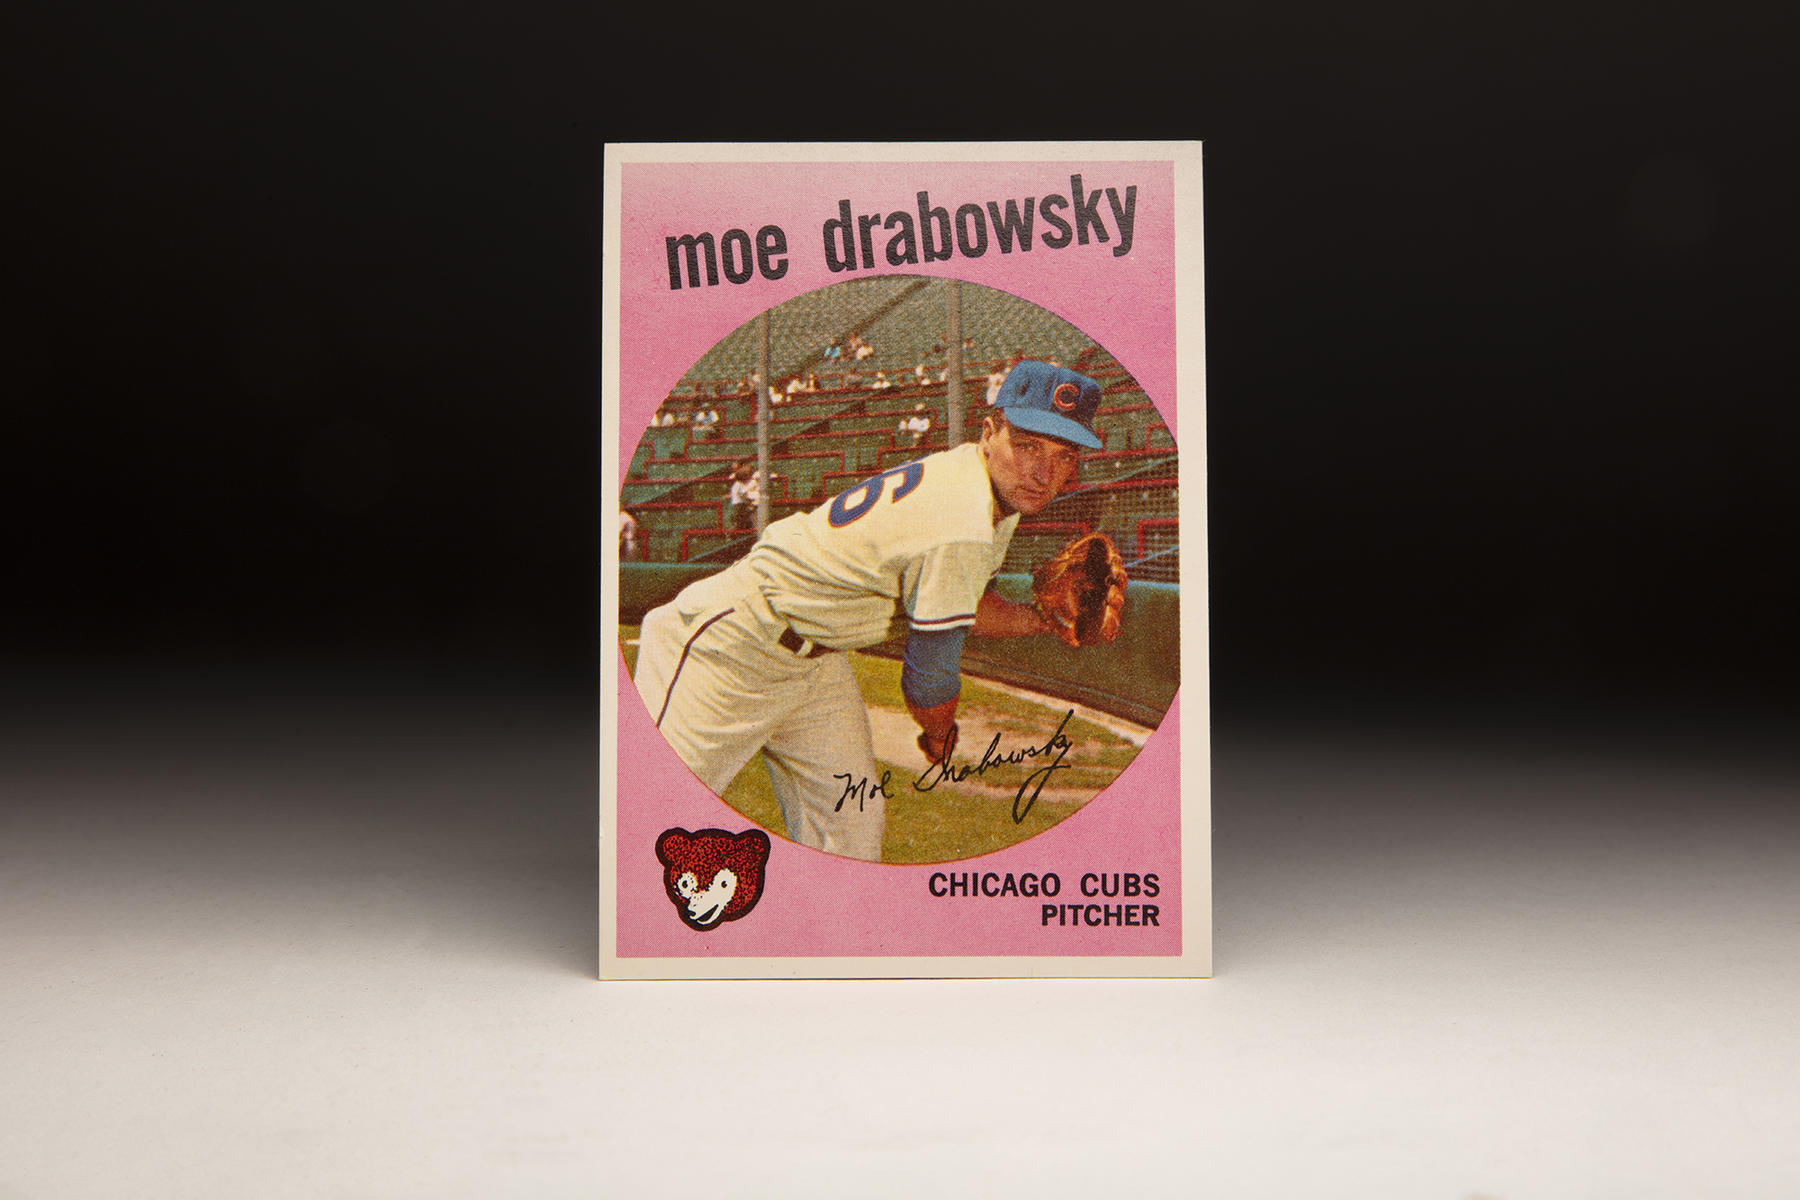 The front of Moe Drabowsky's 1959 Topps card features an unusual pink border. (Milo Stewart Jr./National Baseball Hall of Fame and Museum)